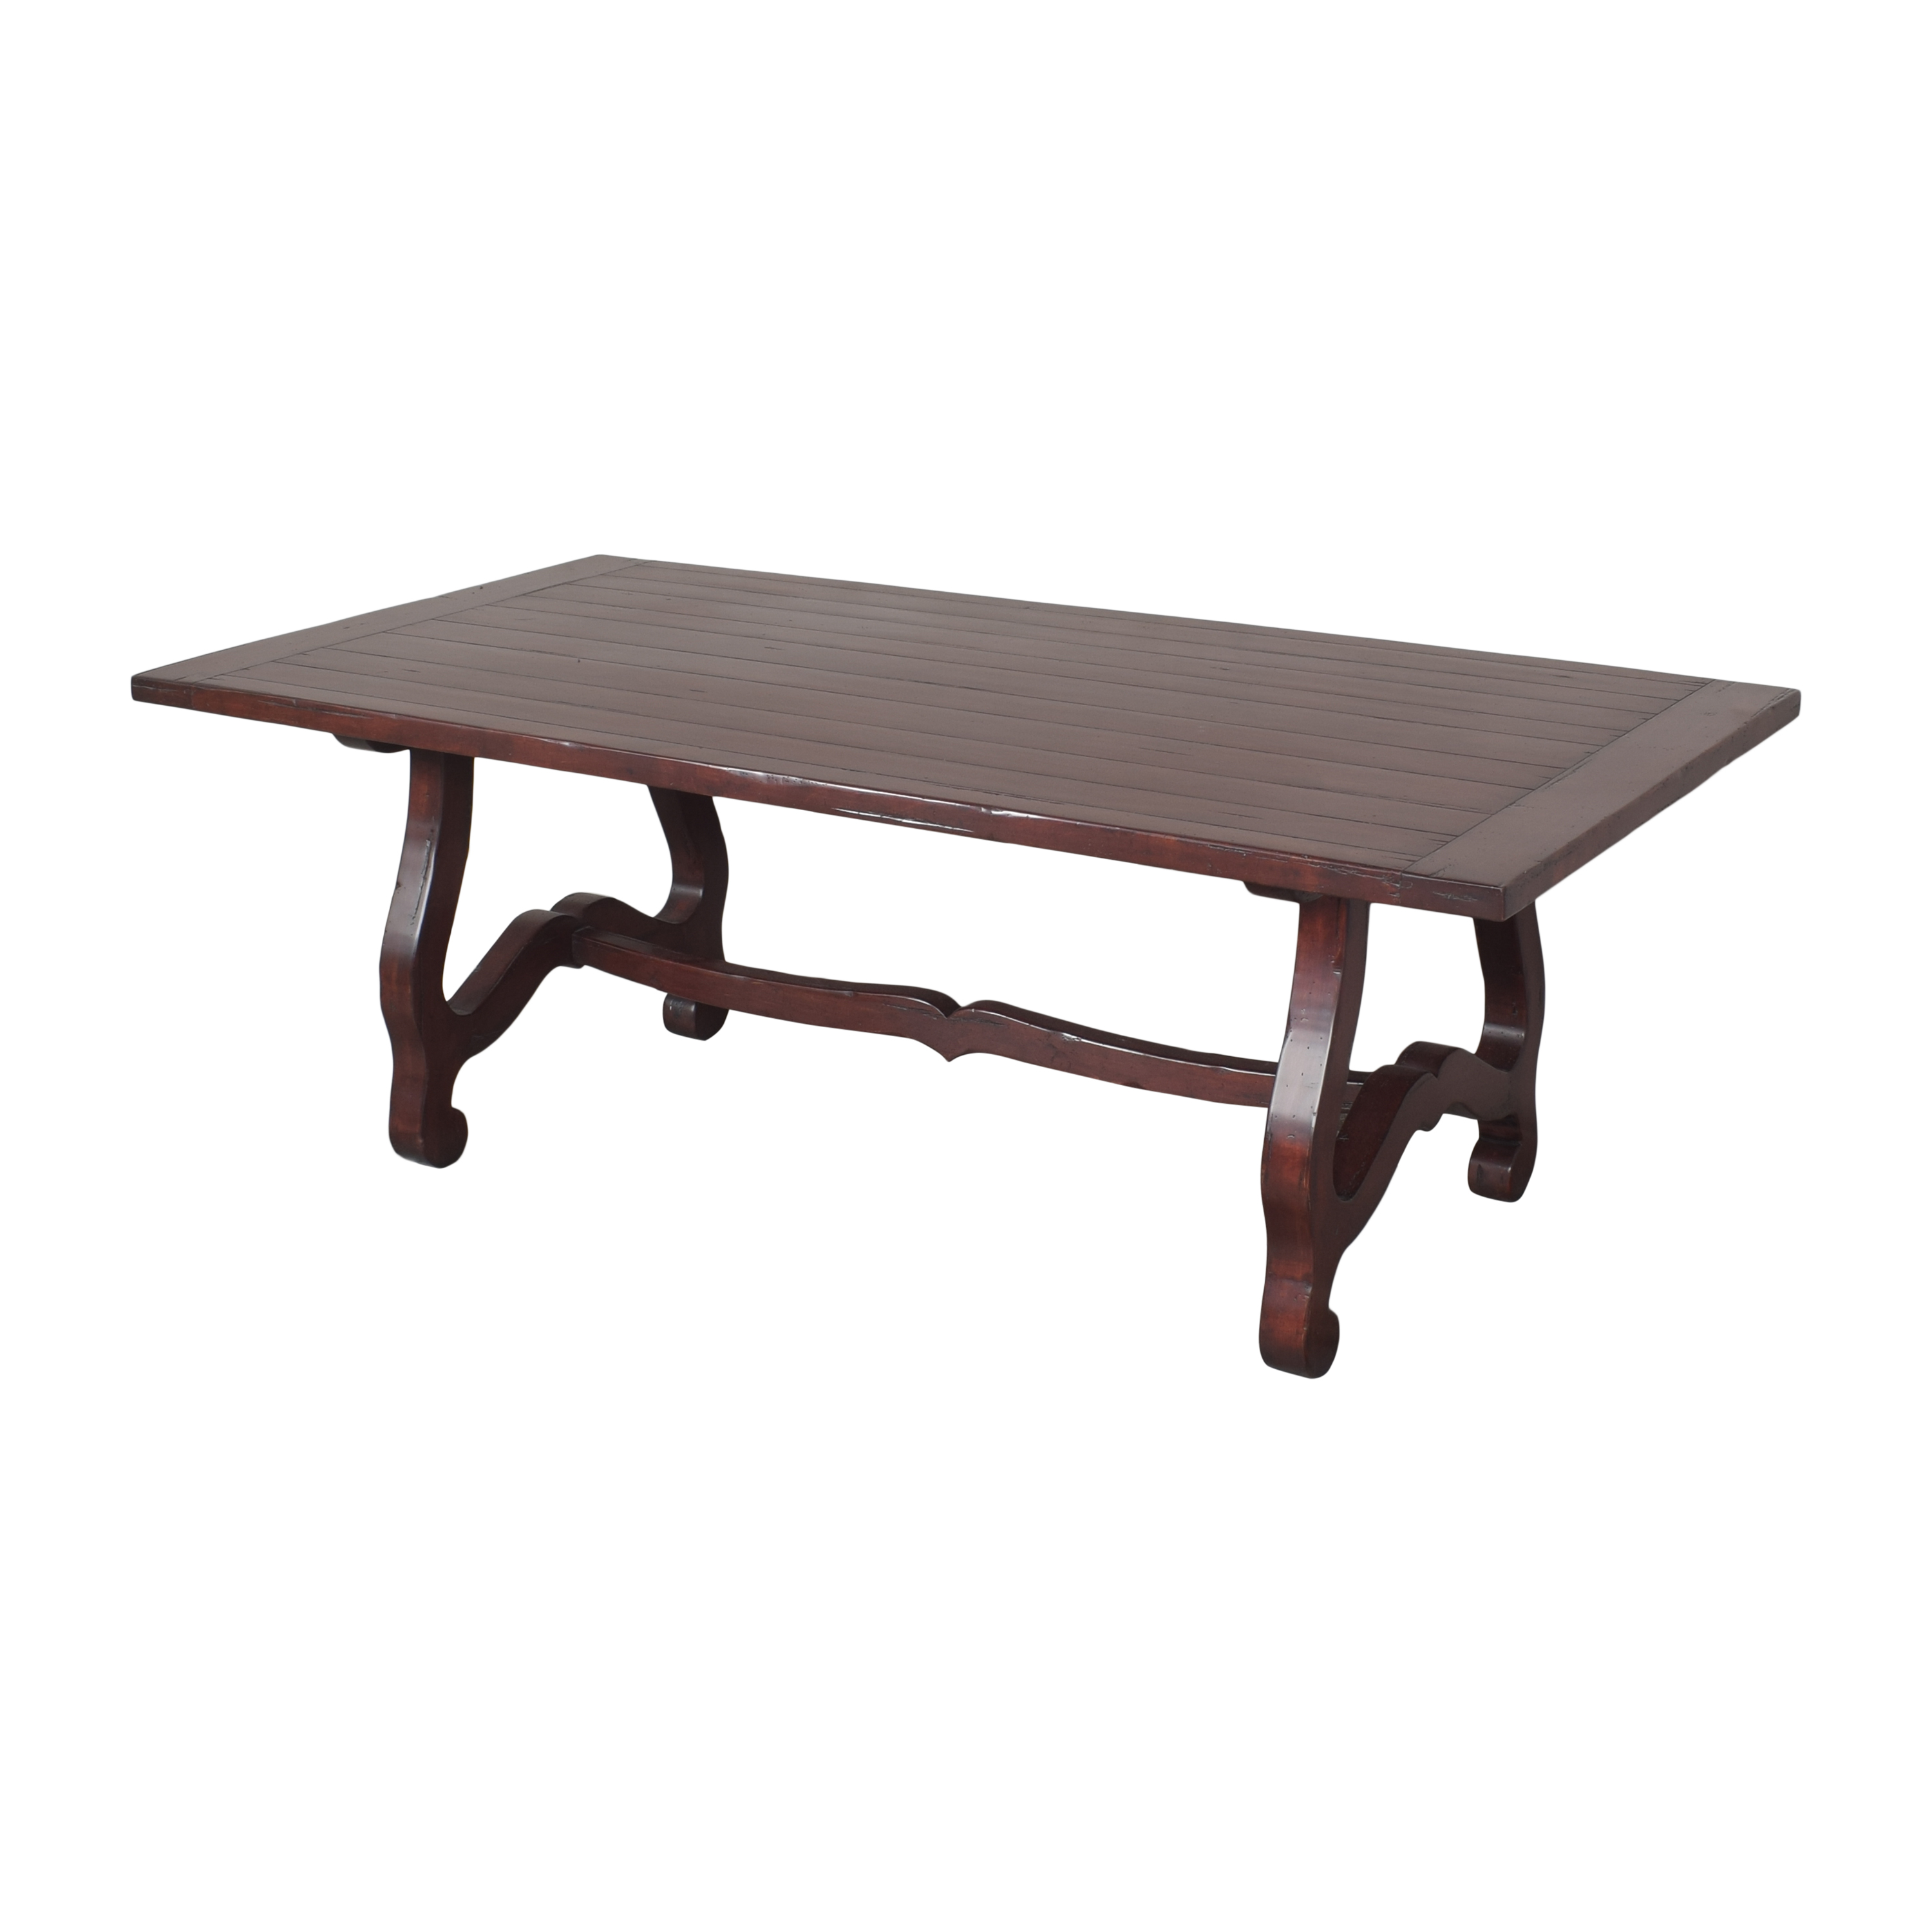 Guy Chaddock & Co. Guy Chaddock & Co Country English Trestle Dining Table brown